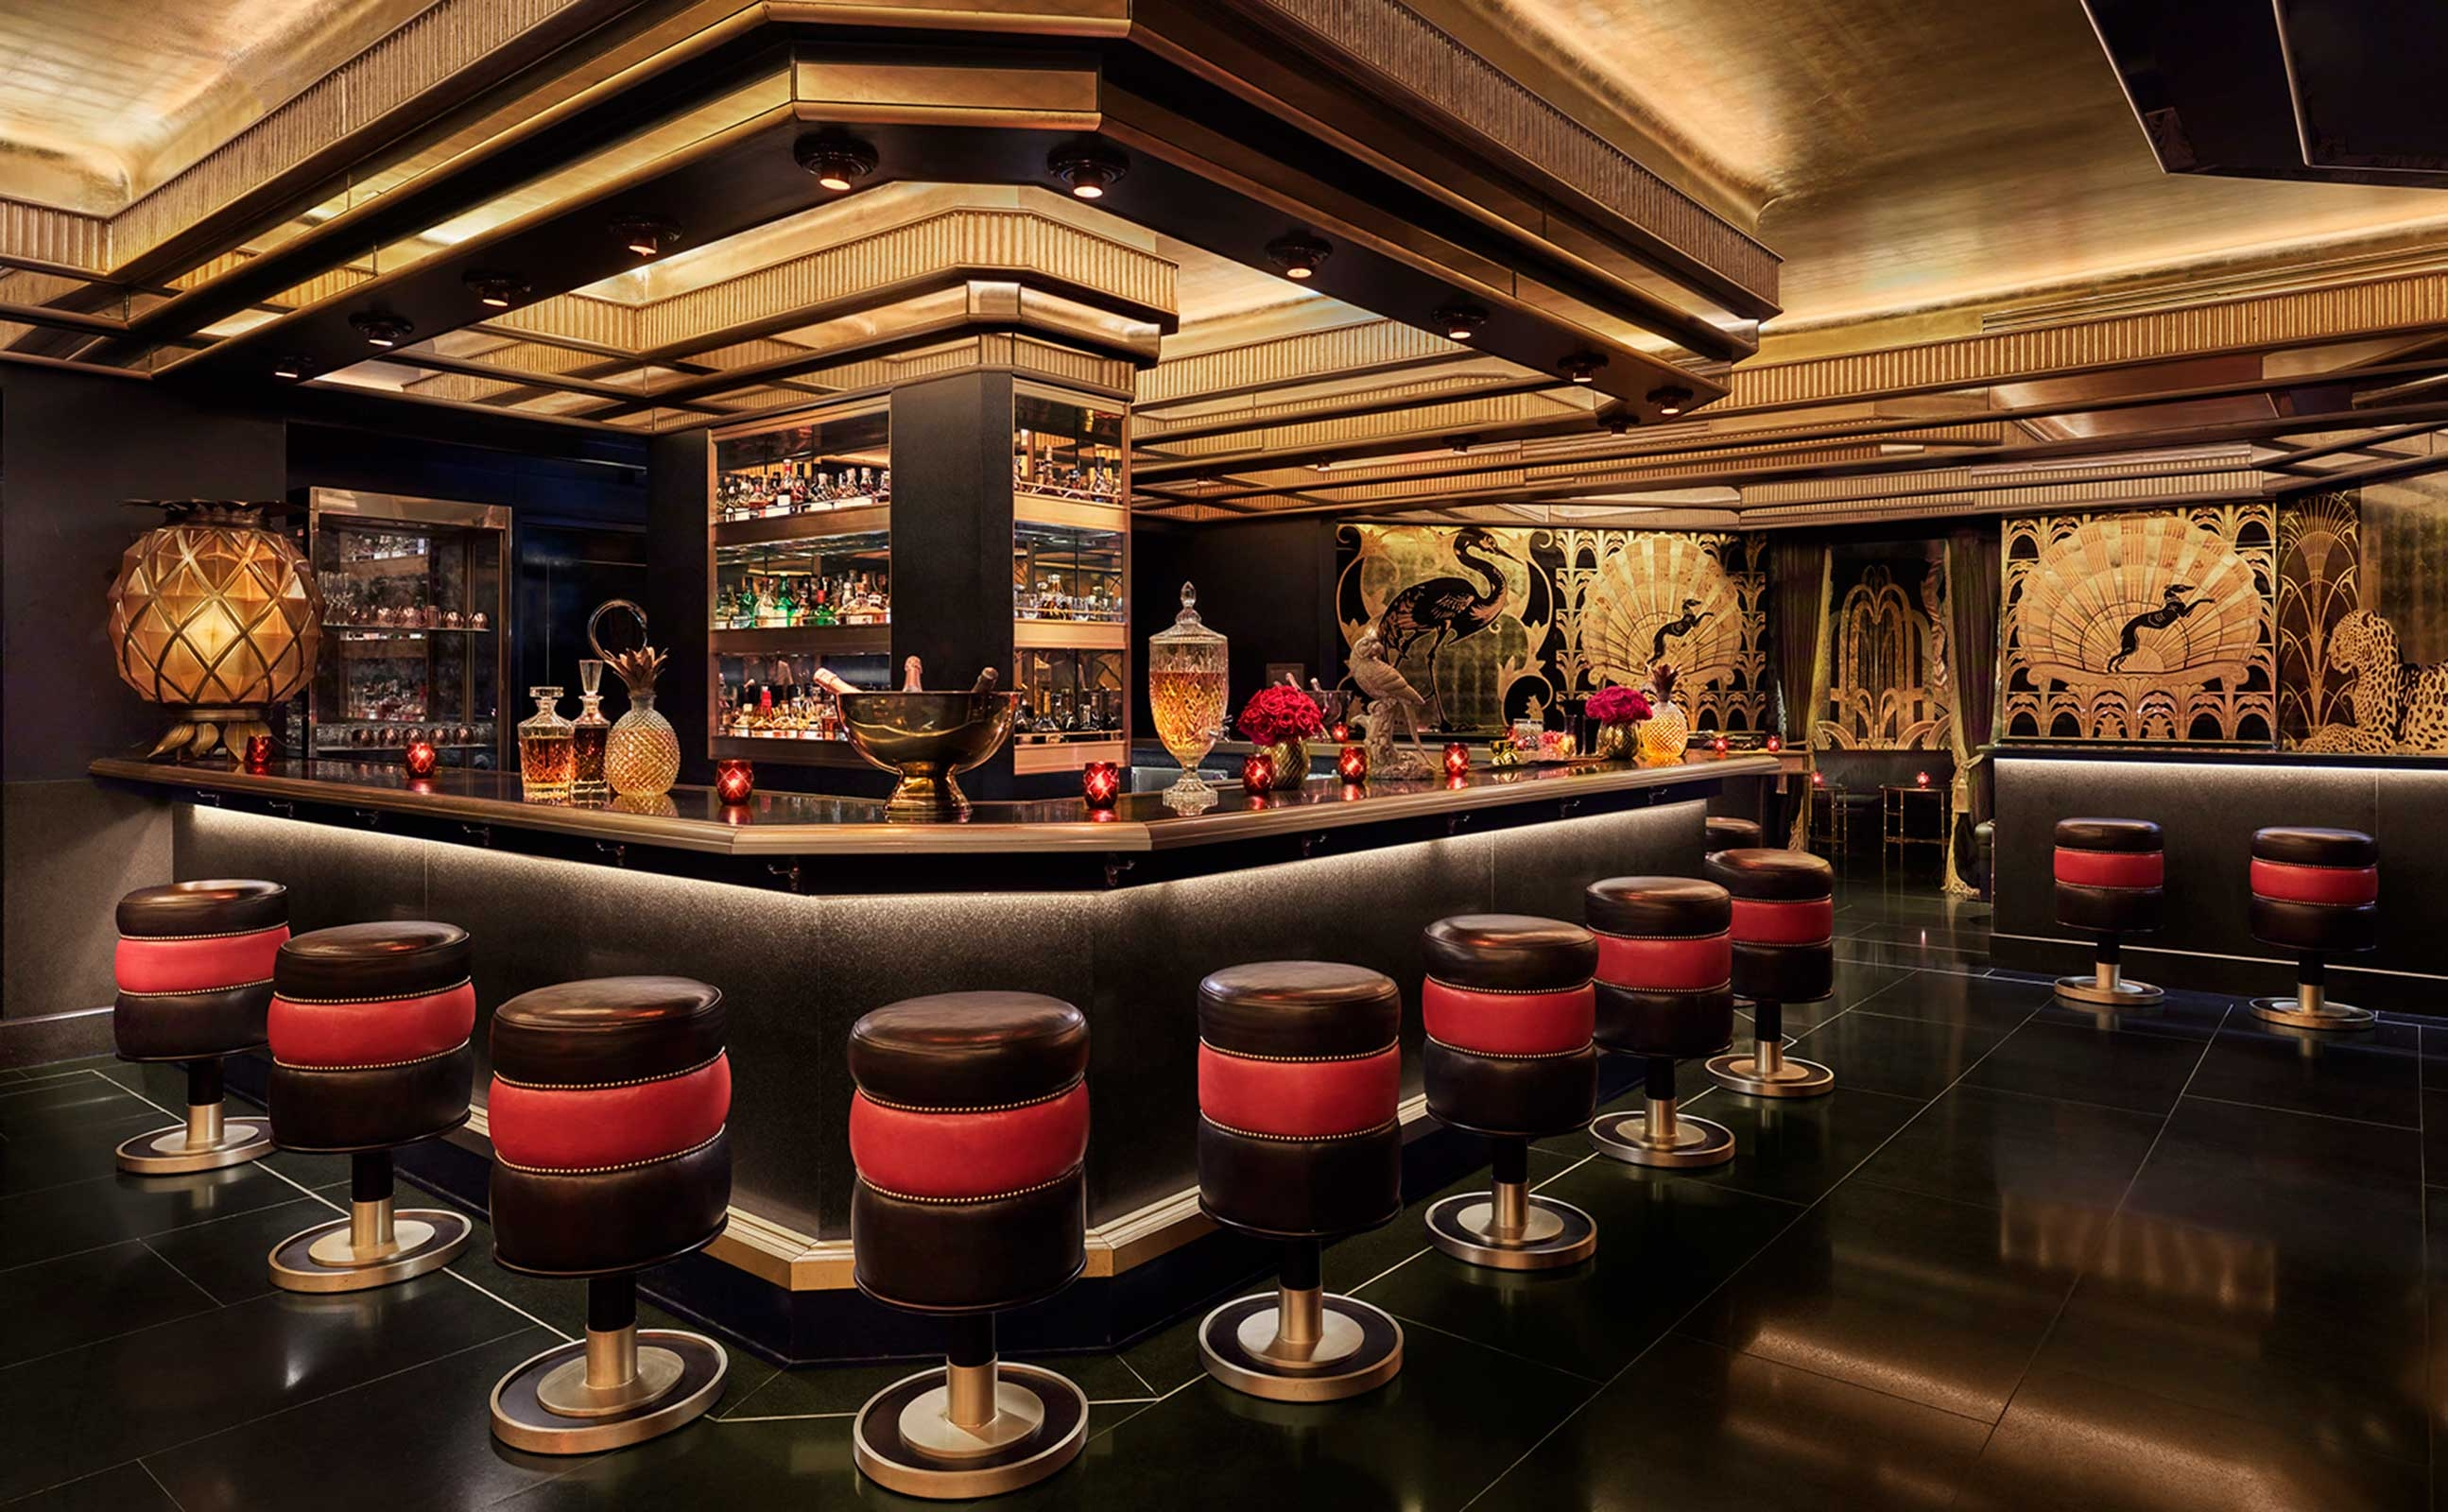 saxony bar interior with red and black stools at the bar